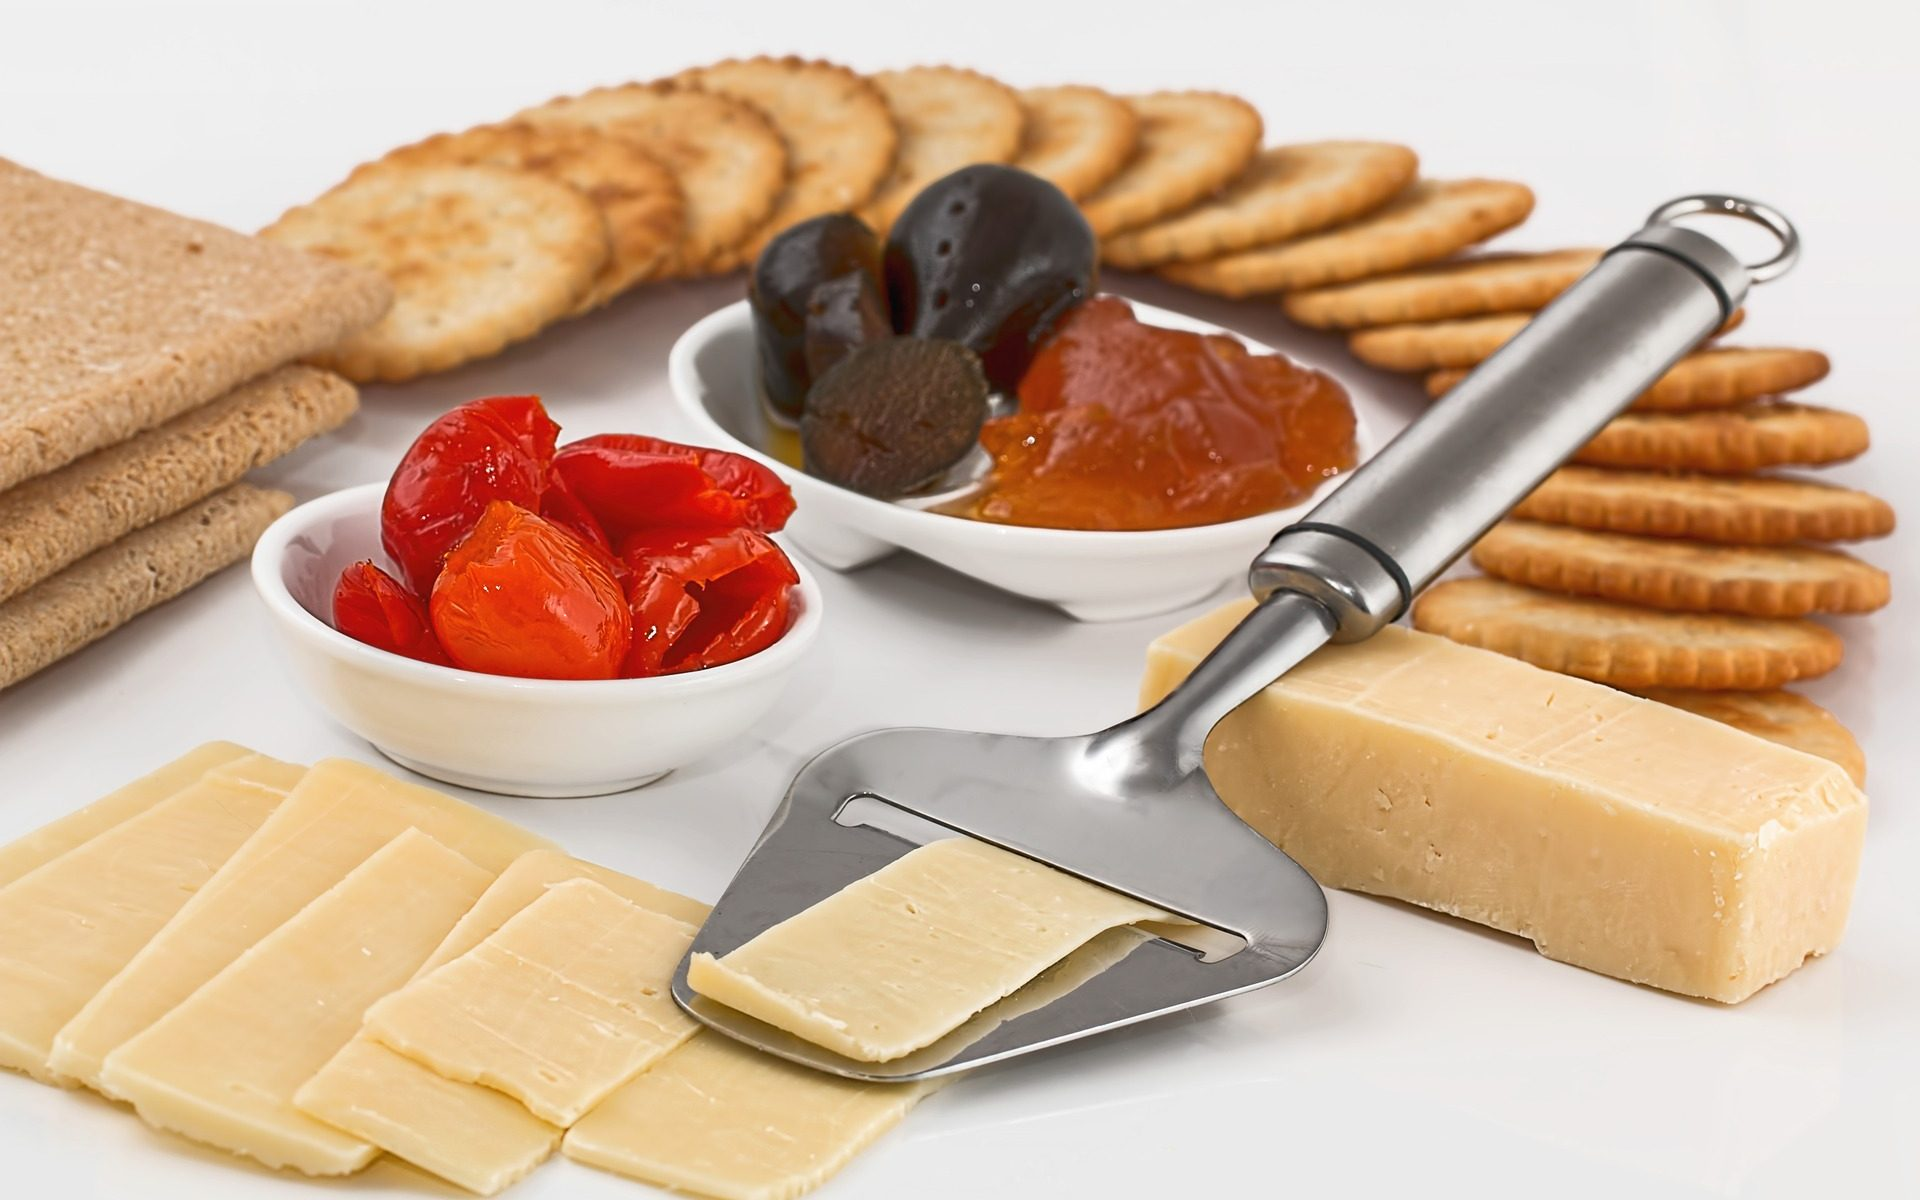 Delicious looking cheese spread